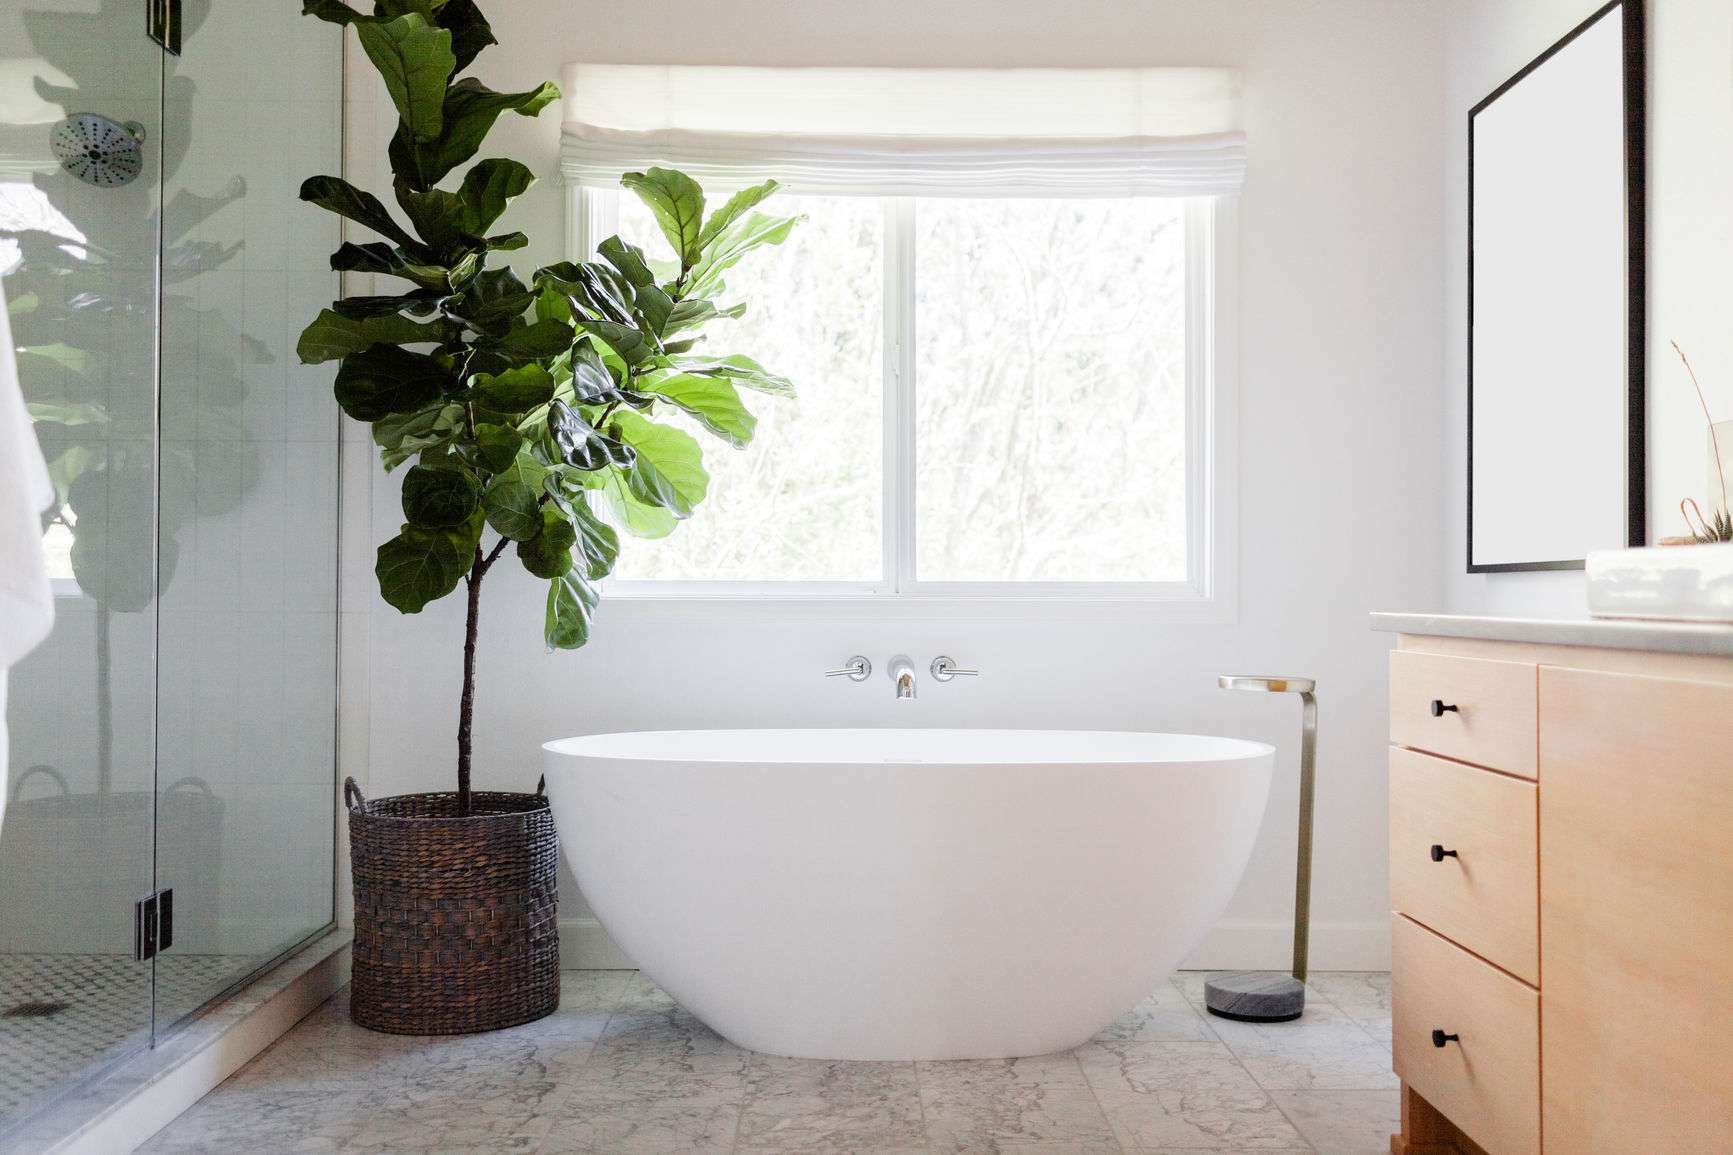 The 10 Plants That Will Be Happiest in Your Bathroom